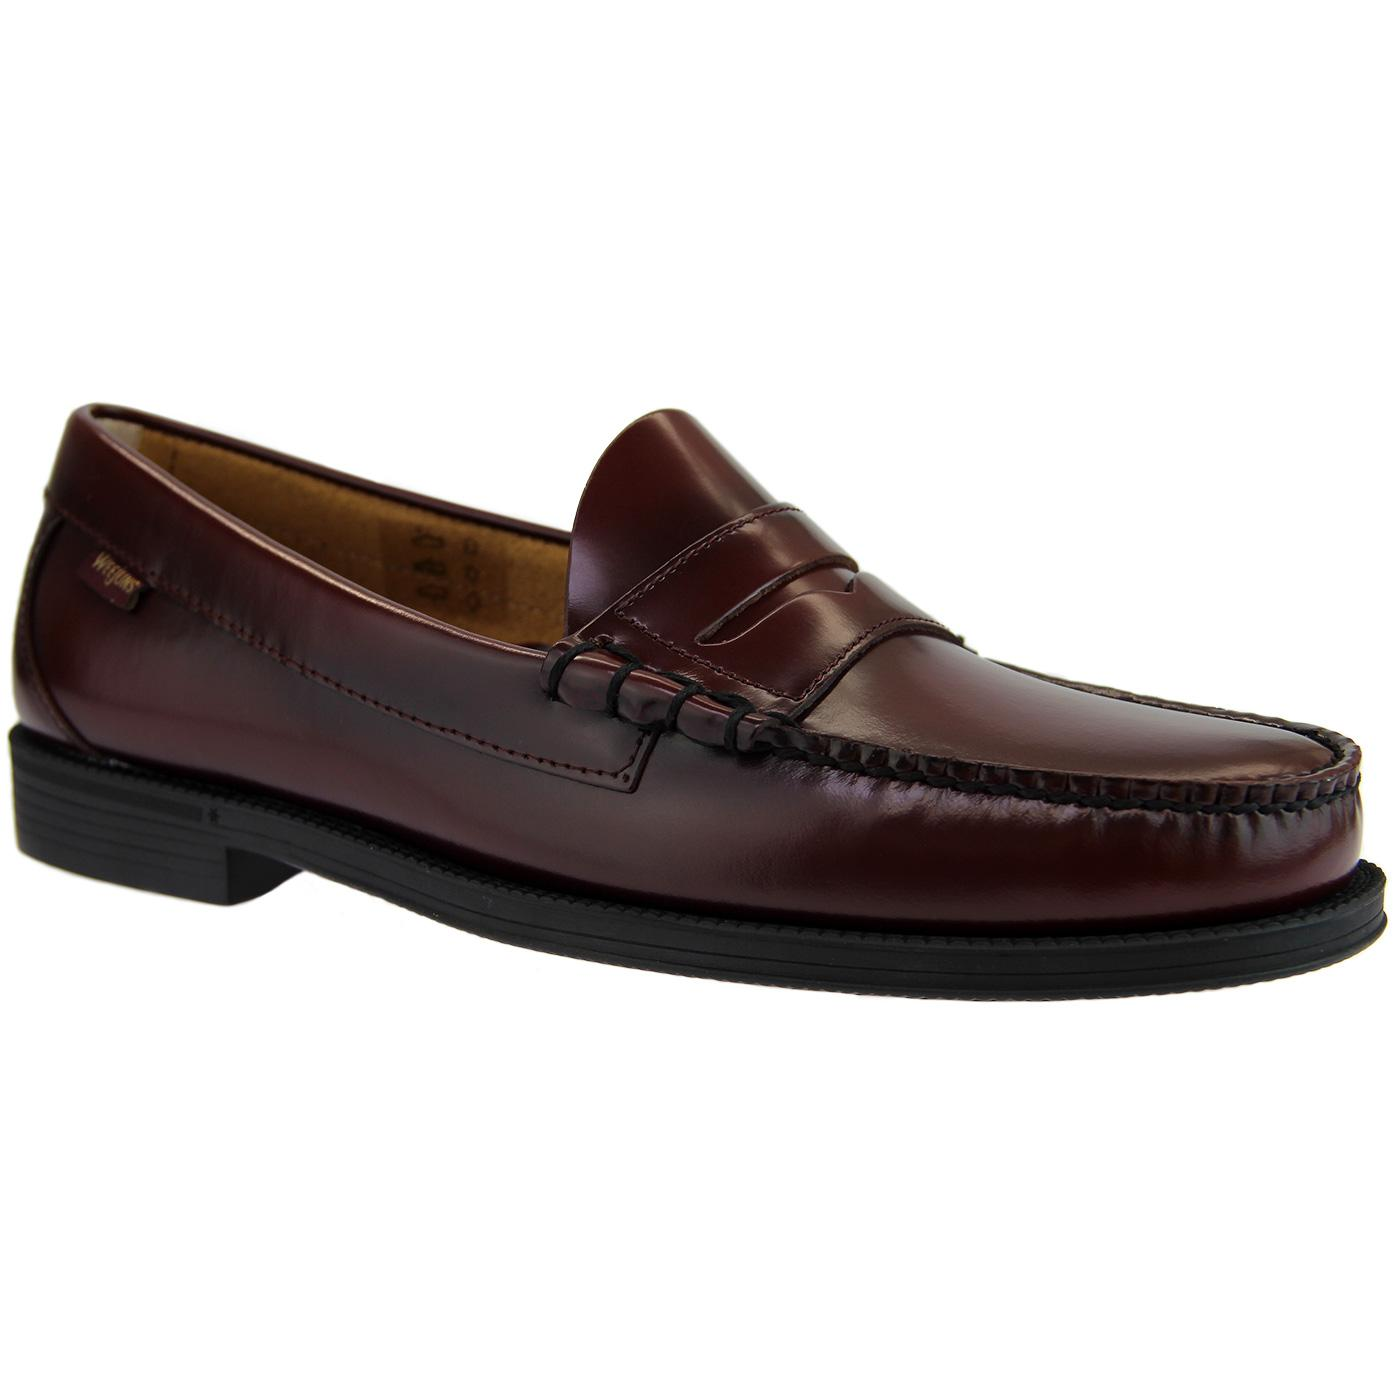 Bass Weejun Ease: Larson Penny Loafer in Wine